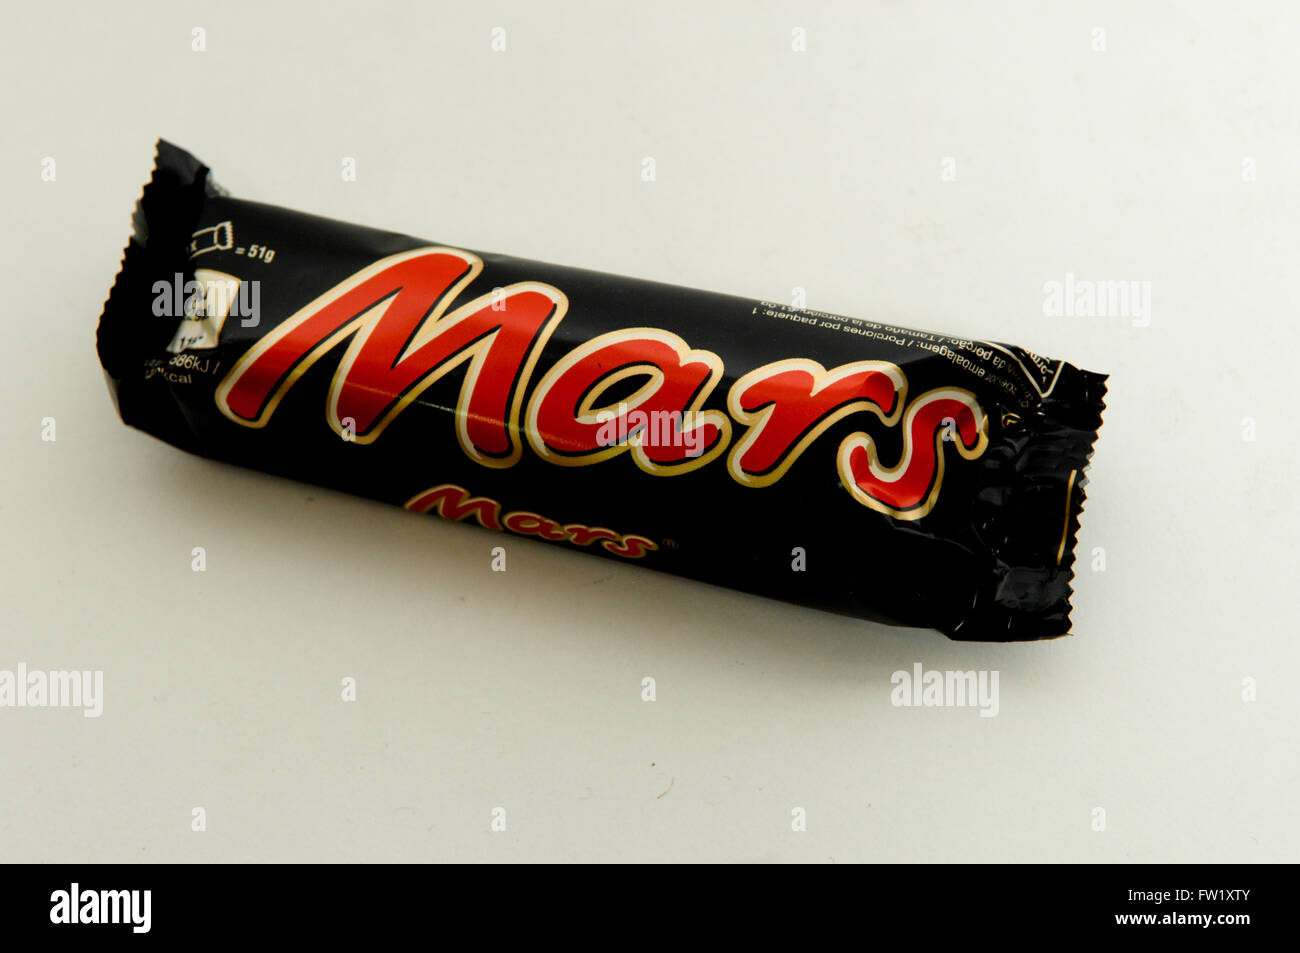 Mars is a British chocolate bar. It was first manufactured in 1932 ...